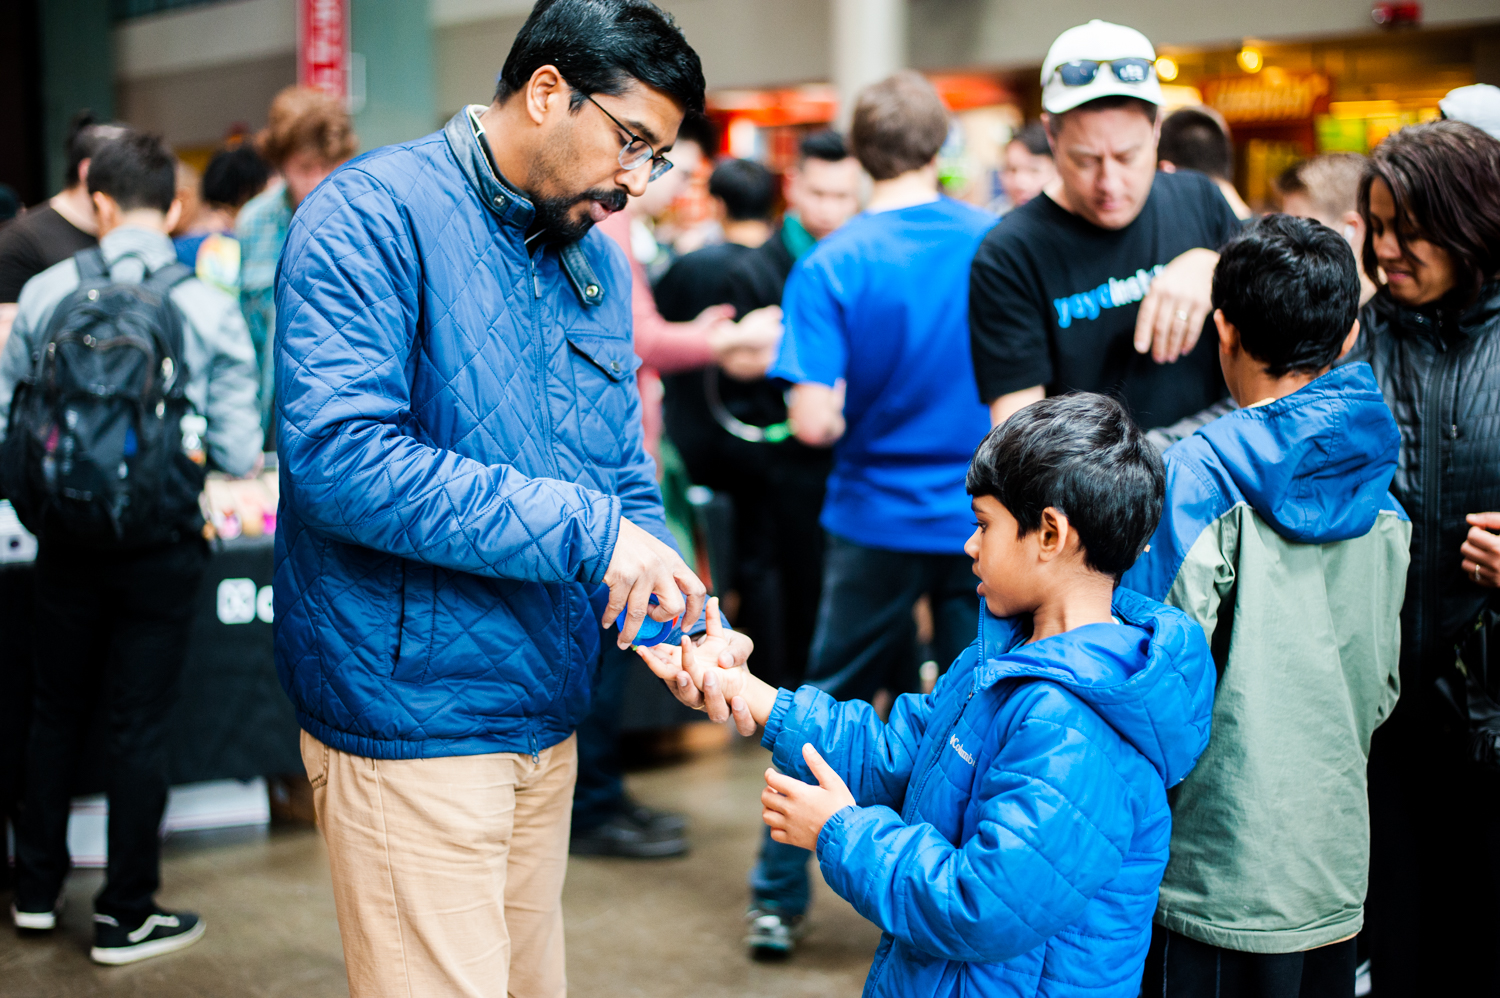 "The Pacific Northwest Regional Yo-Yo Championship was held today, February 23, 2019 at the Seattle Center and is the ""premier yo-yo event in the Pacific Northwest."" This competition has been around since 2005 and attracts top talent from the region and around the country (Image: Elizabeth Crook / Seattle Refined)."